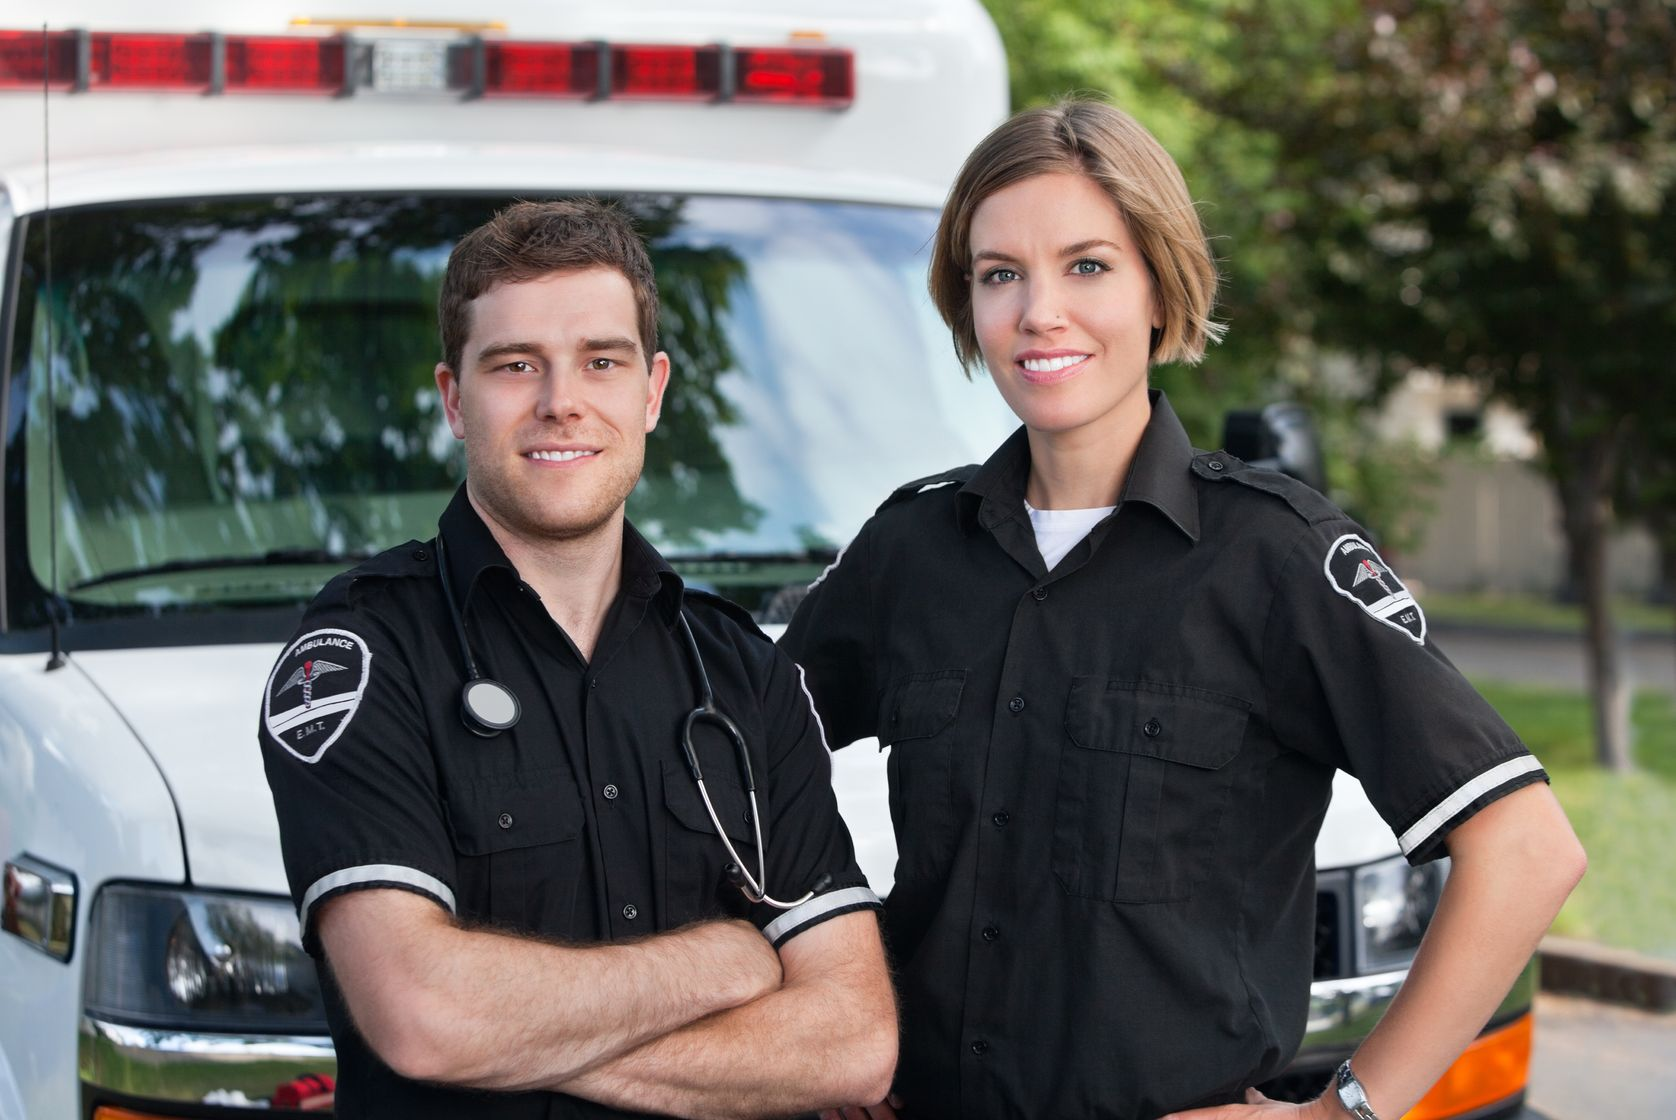 Earning Your EMT Diploma with HCI